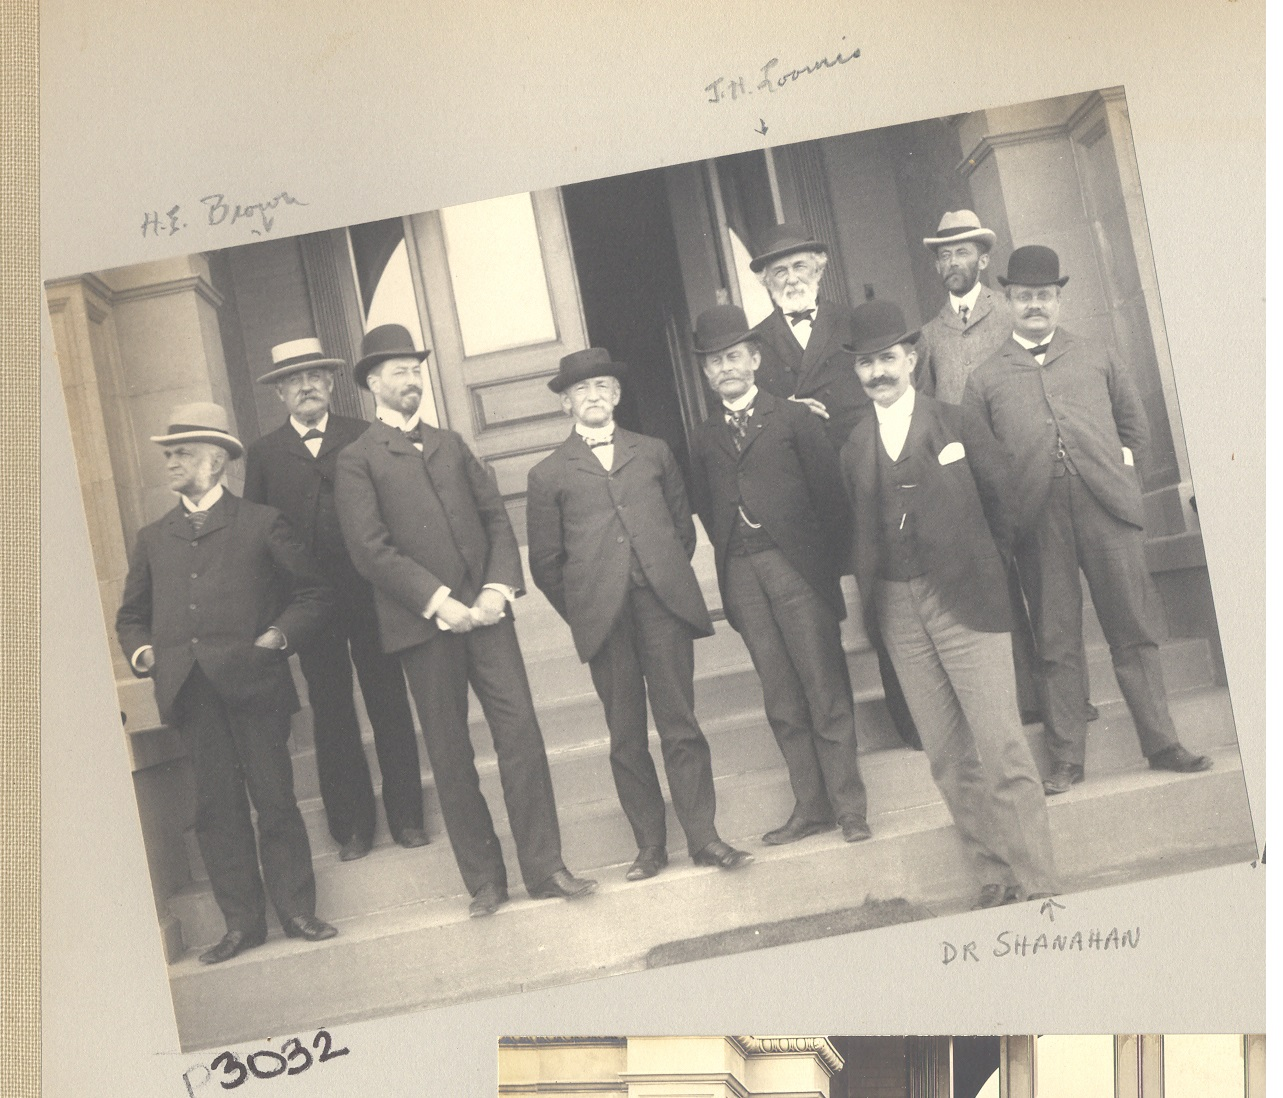 Image of William T. Shananhan and other men on steps of building at Craig Colony